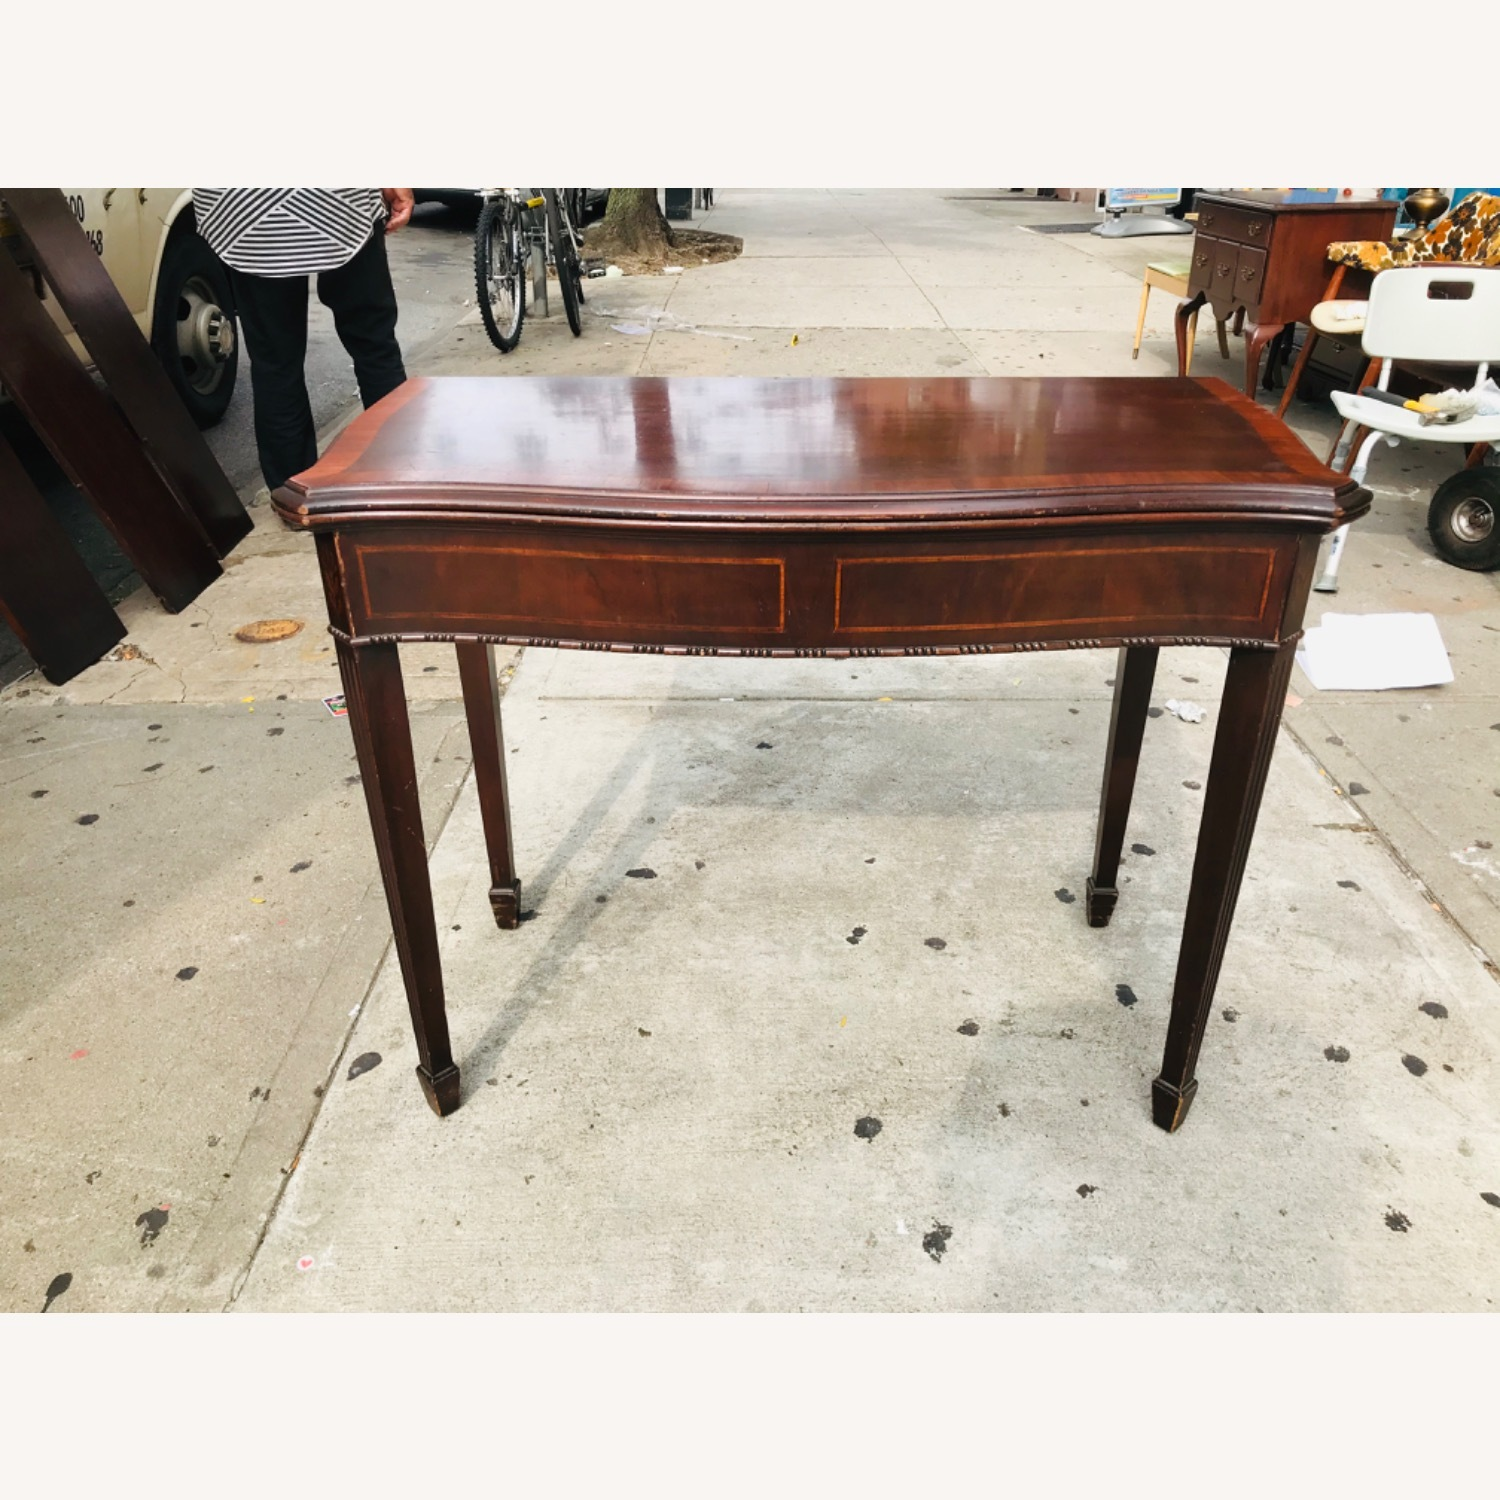 Antique 1920s Mahogany Table w/3 Leaves  - image-31